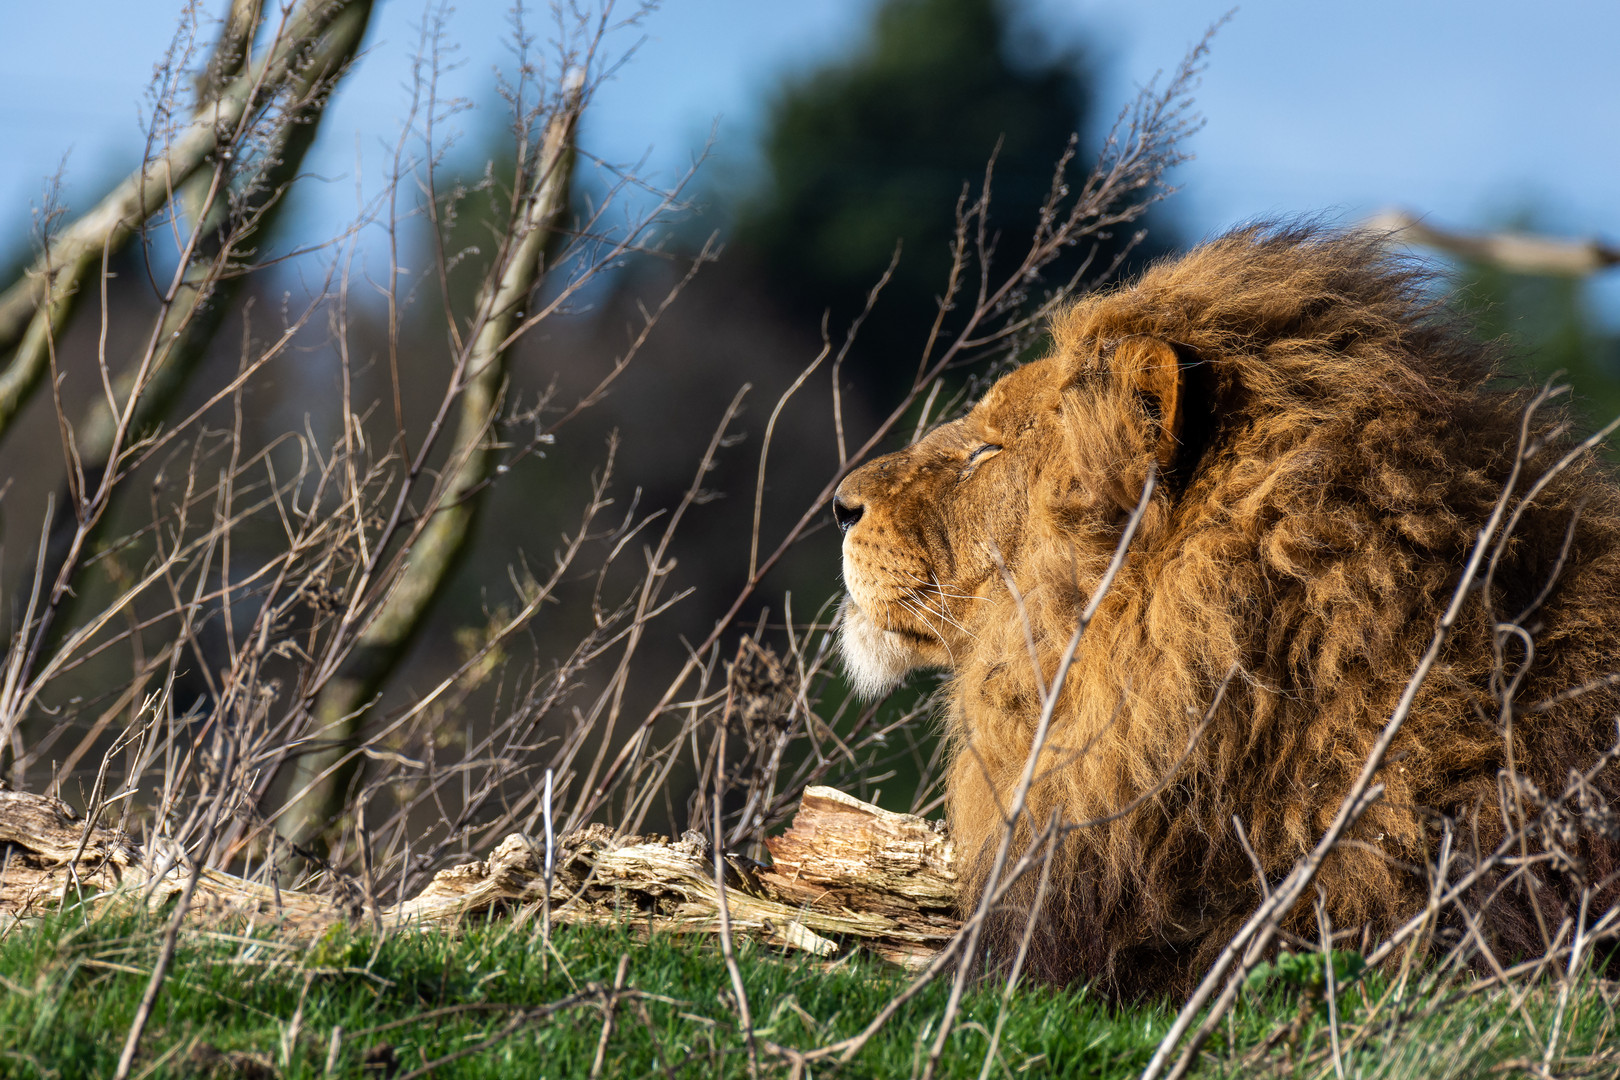 The King of the Jungle, Yorkshire Wildlife Park, England